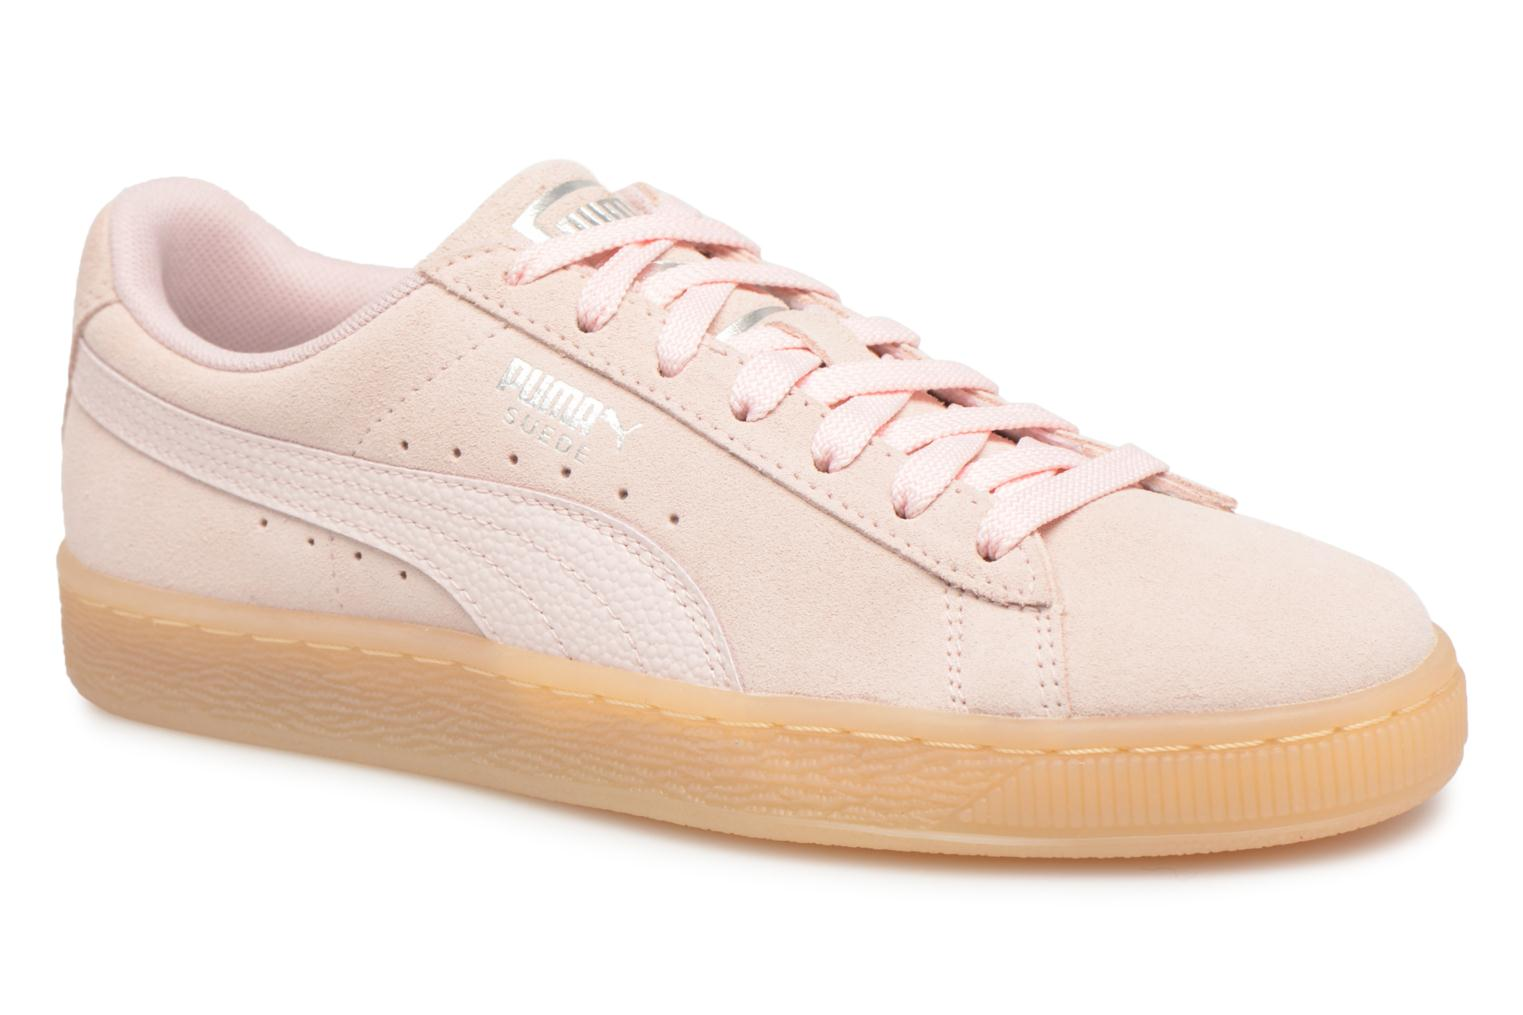 Marques Chaussure femme Puma femme Suede Classic Bubble Wn's Pearl